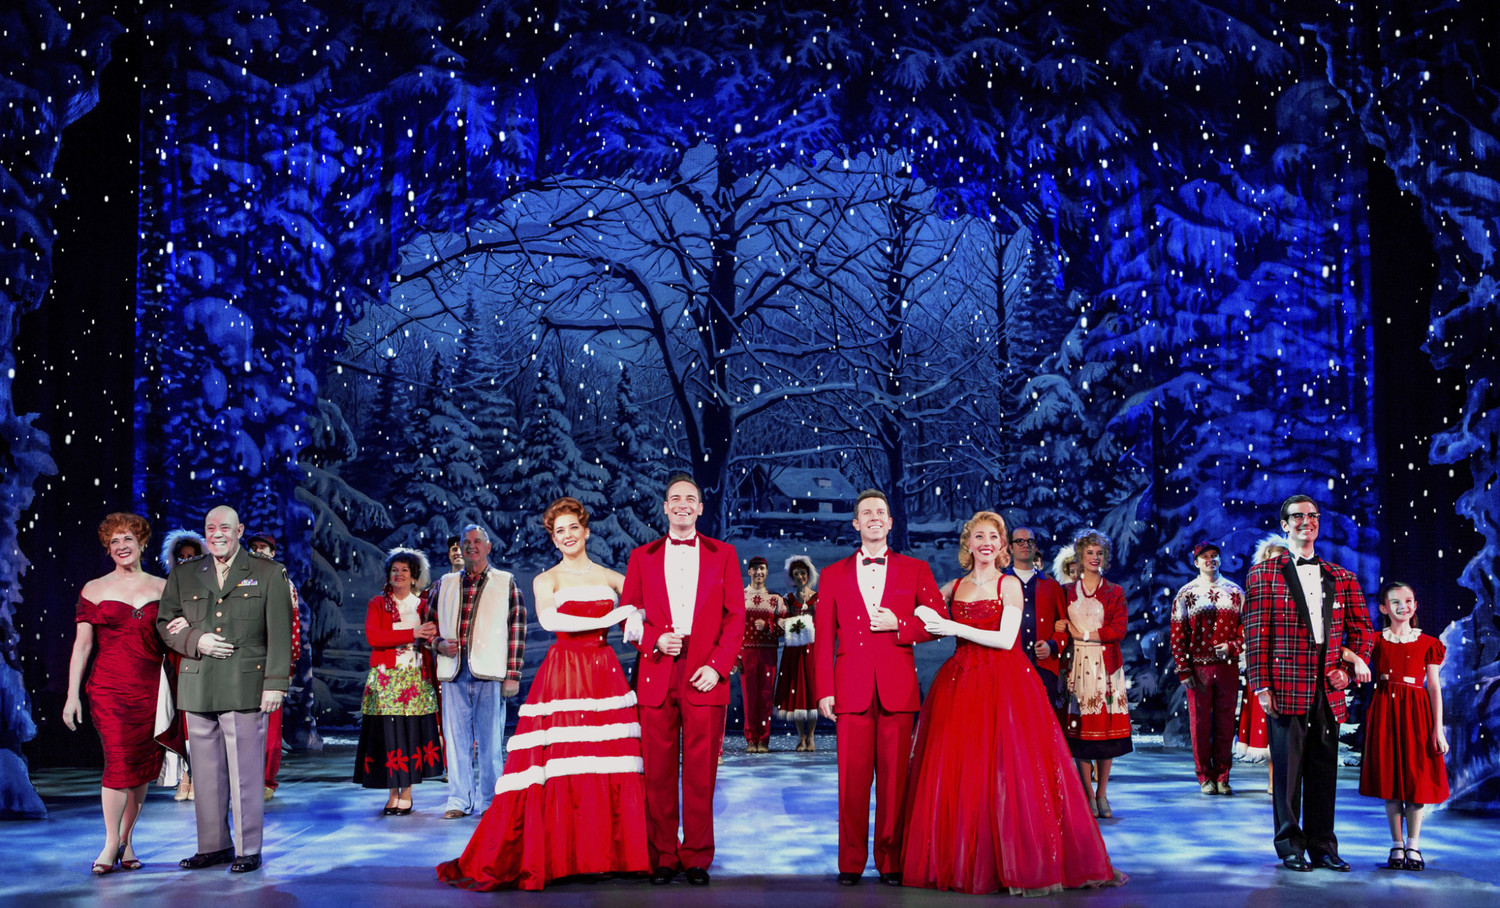 BWW Review: WHITE CHRISTMAS at Denver Center for the Performing Arts